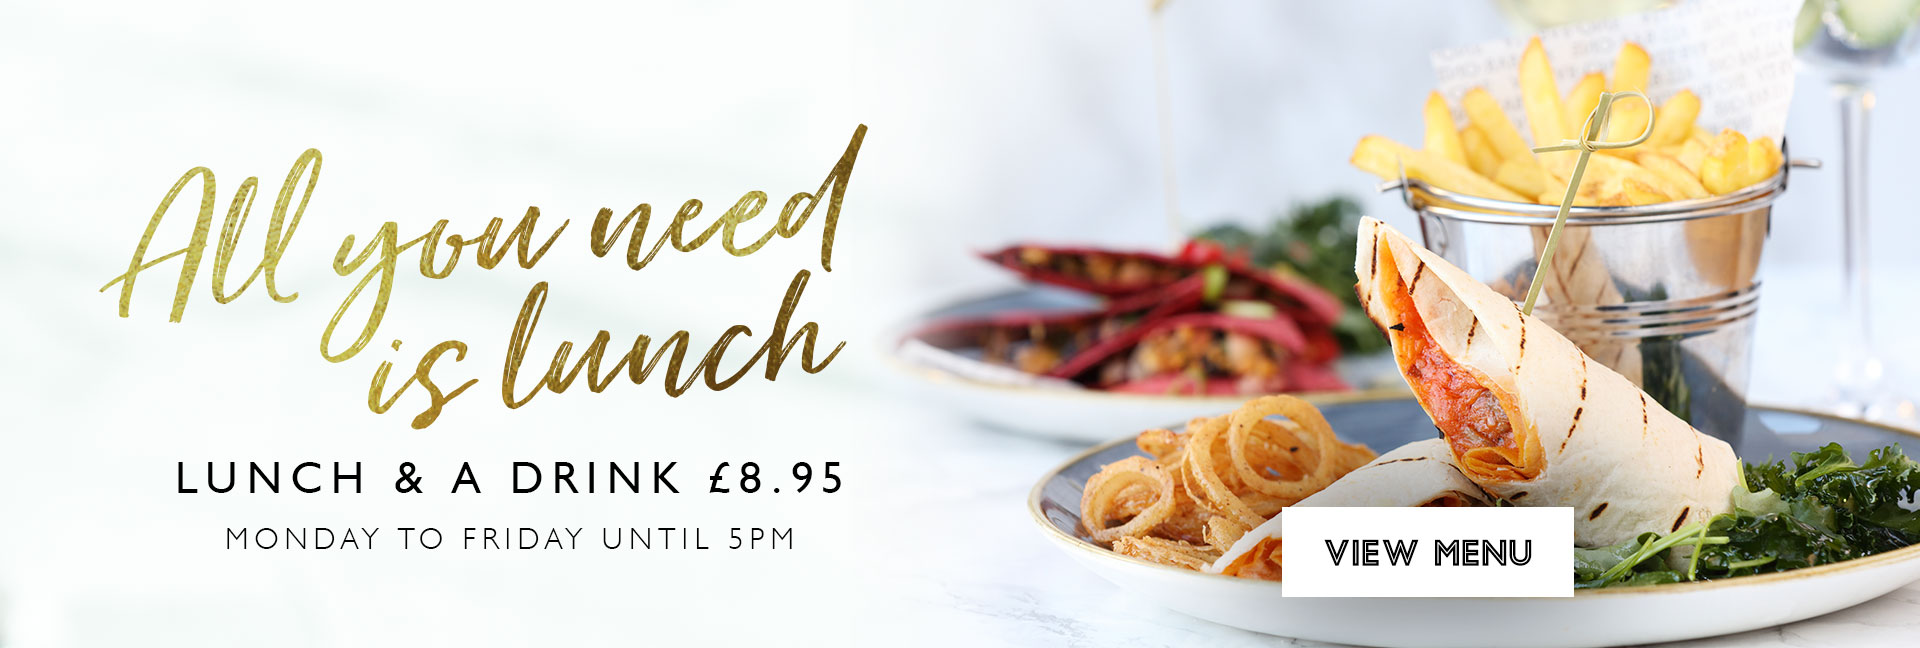 Lunch Offer at All Bar One Newhall Street Birmingham